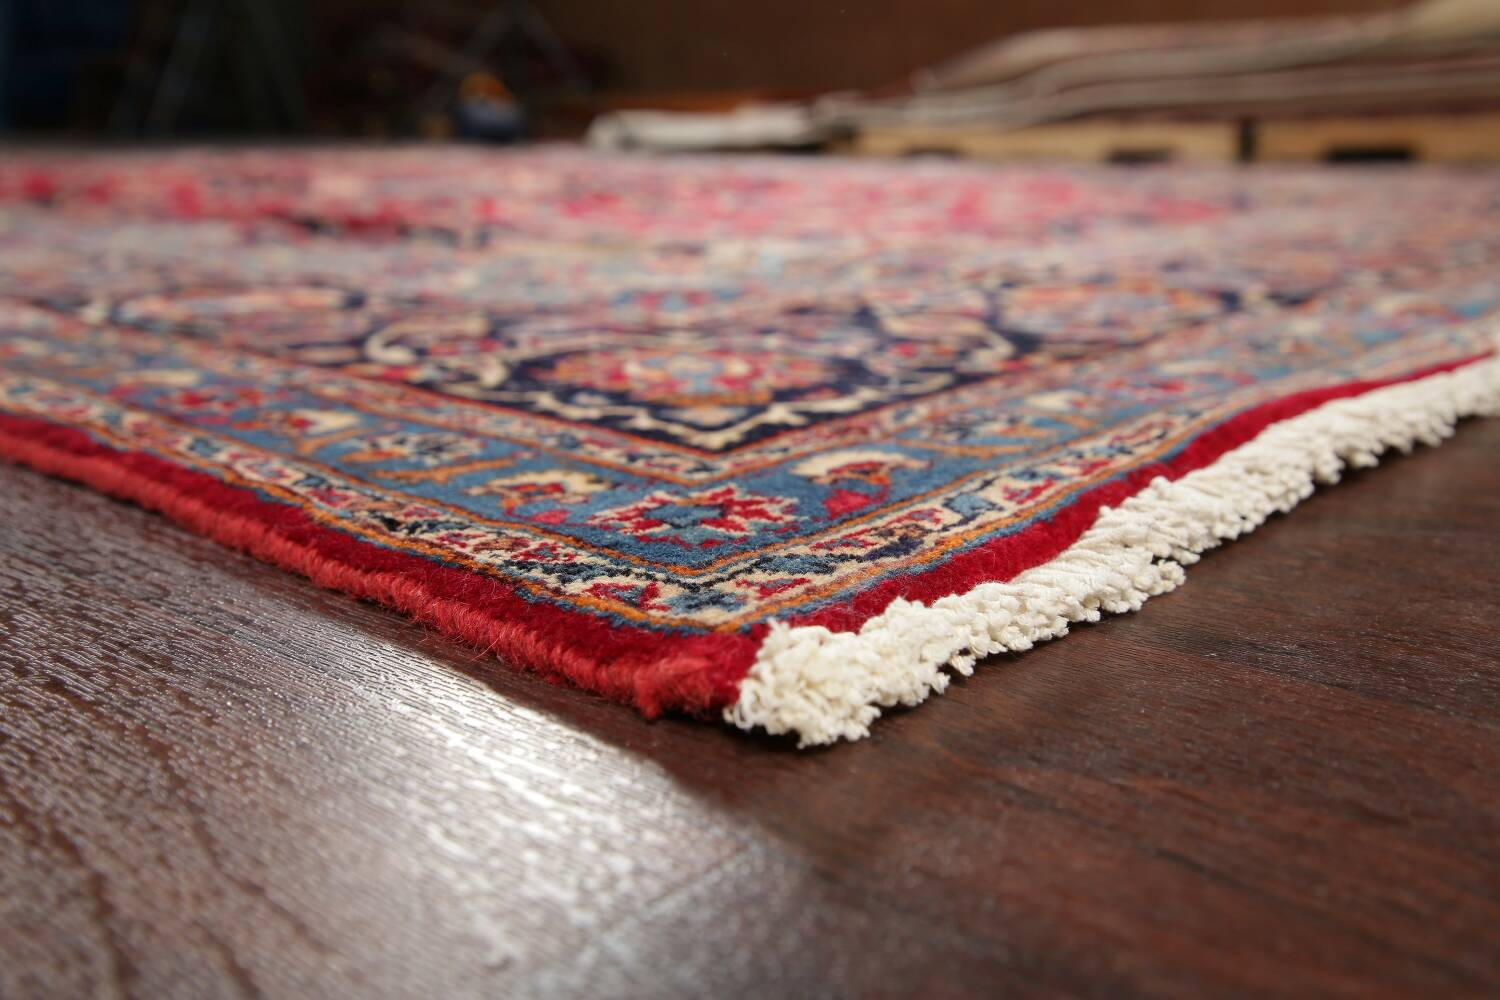 Floral Kashmar Red Persian Area Rug 8x11 image 6